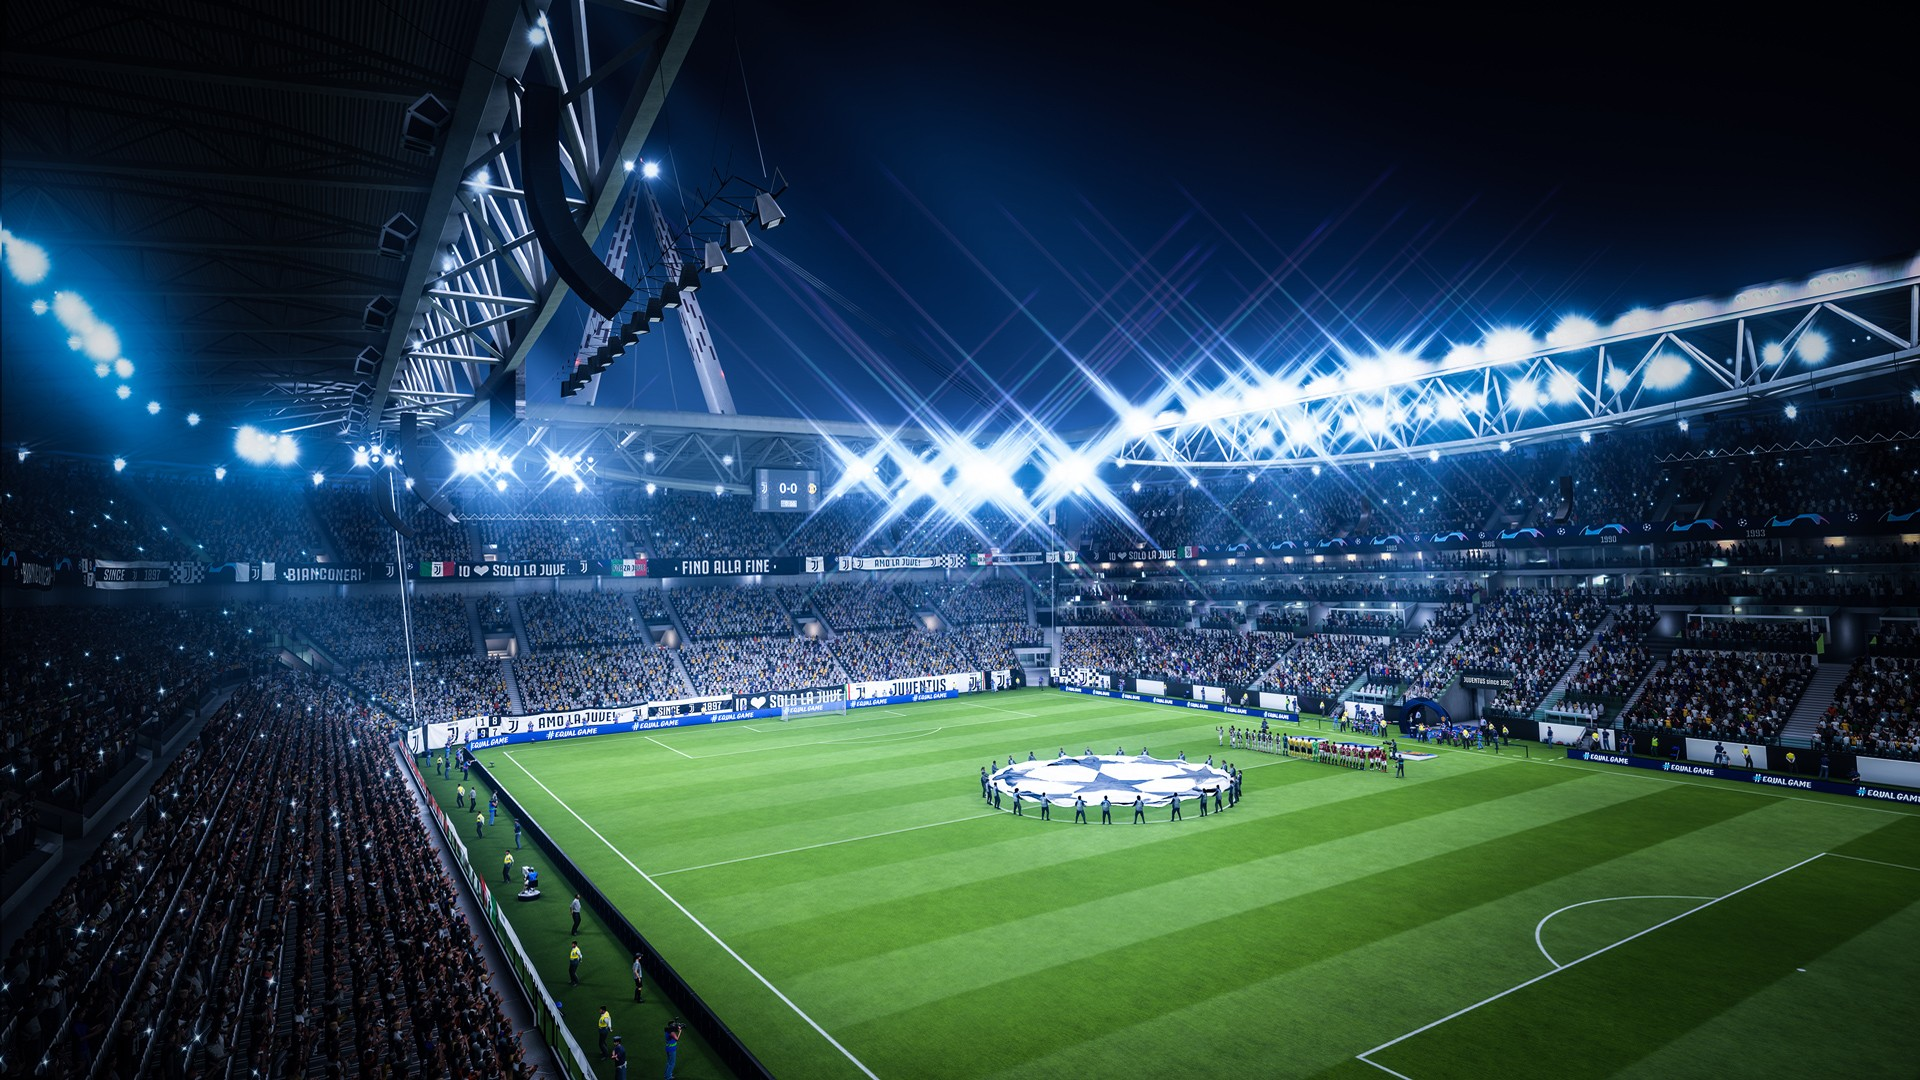 FIFA 19 vs PES 2019: which is the best football game? | PCGamesN